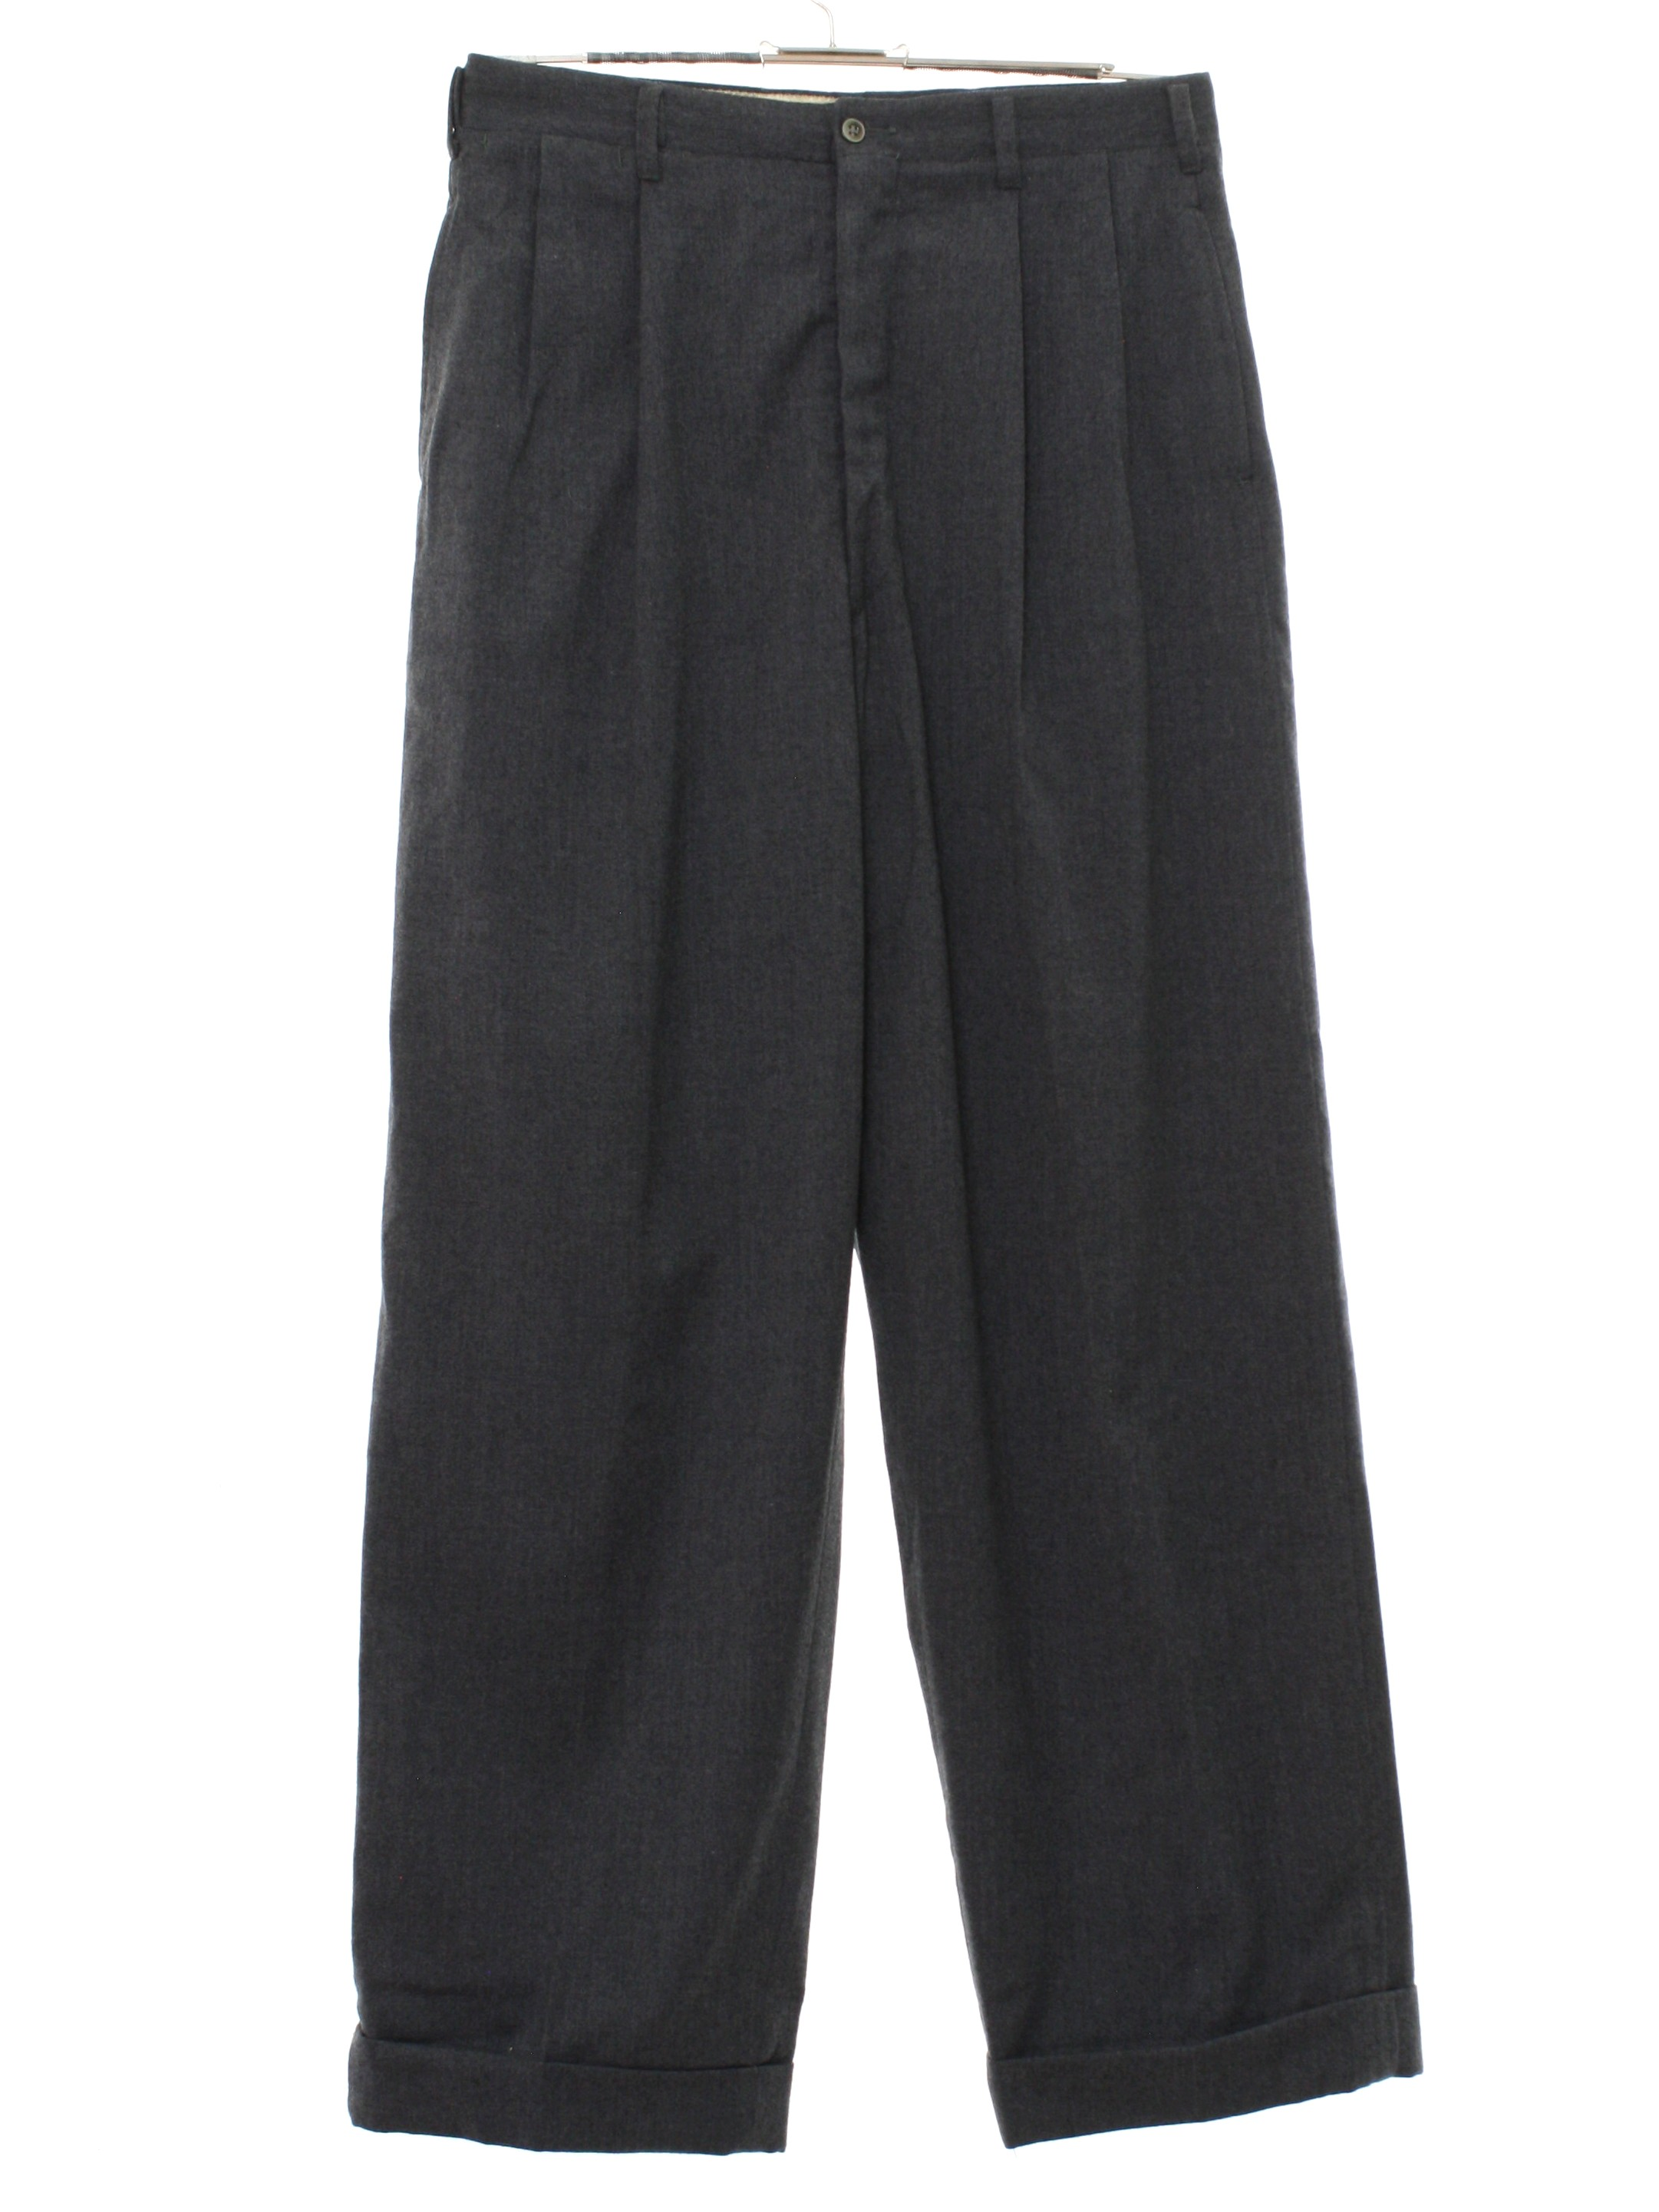 60 S Vintage Pants 60s Majer Slacks Mens Charcoal Grey